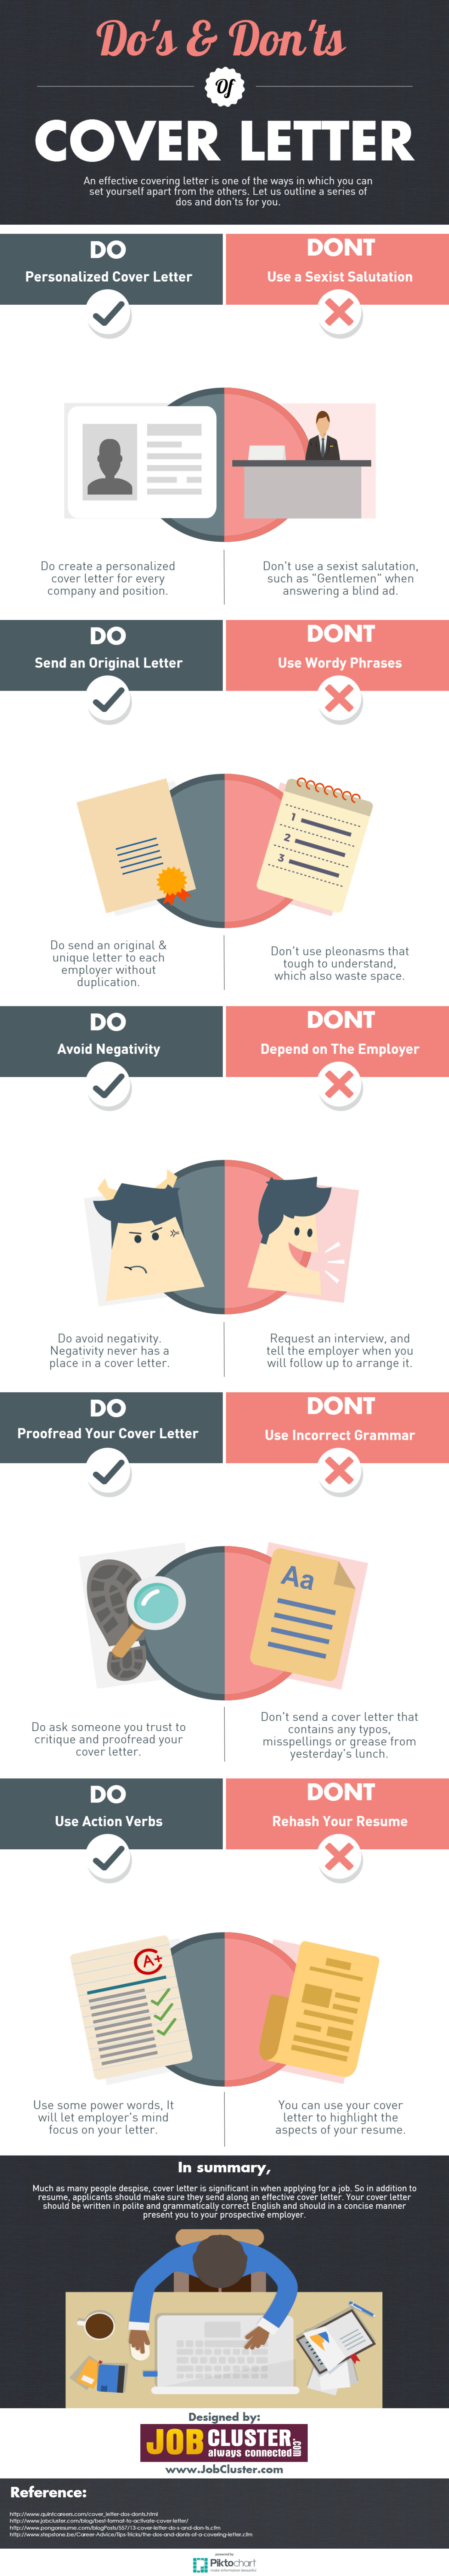 cover letter do s and don ts for seekers infographic